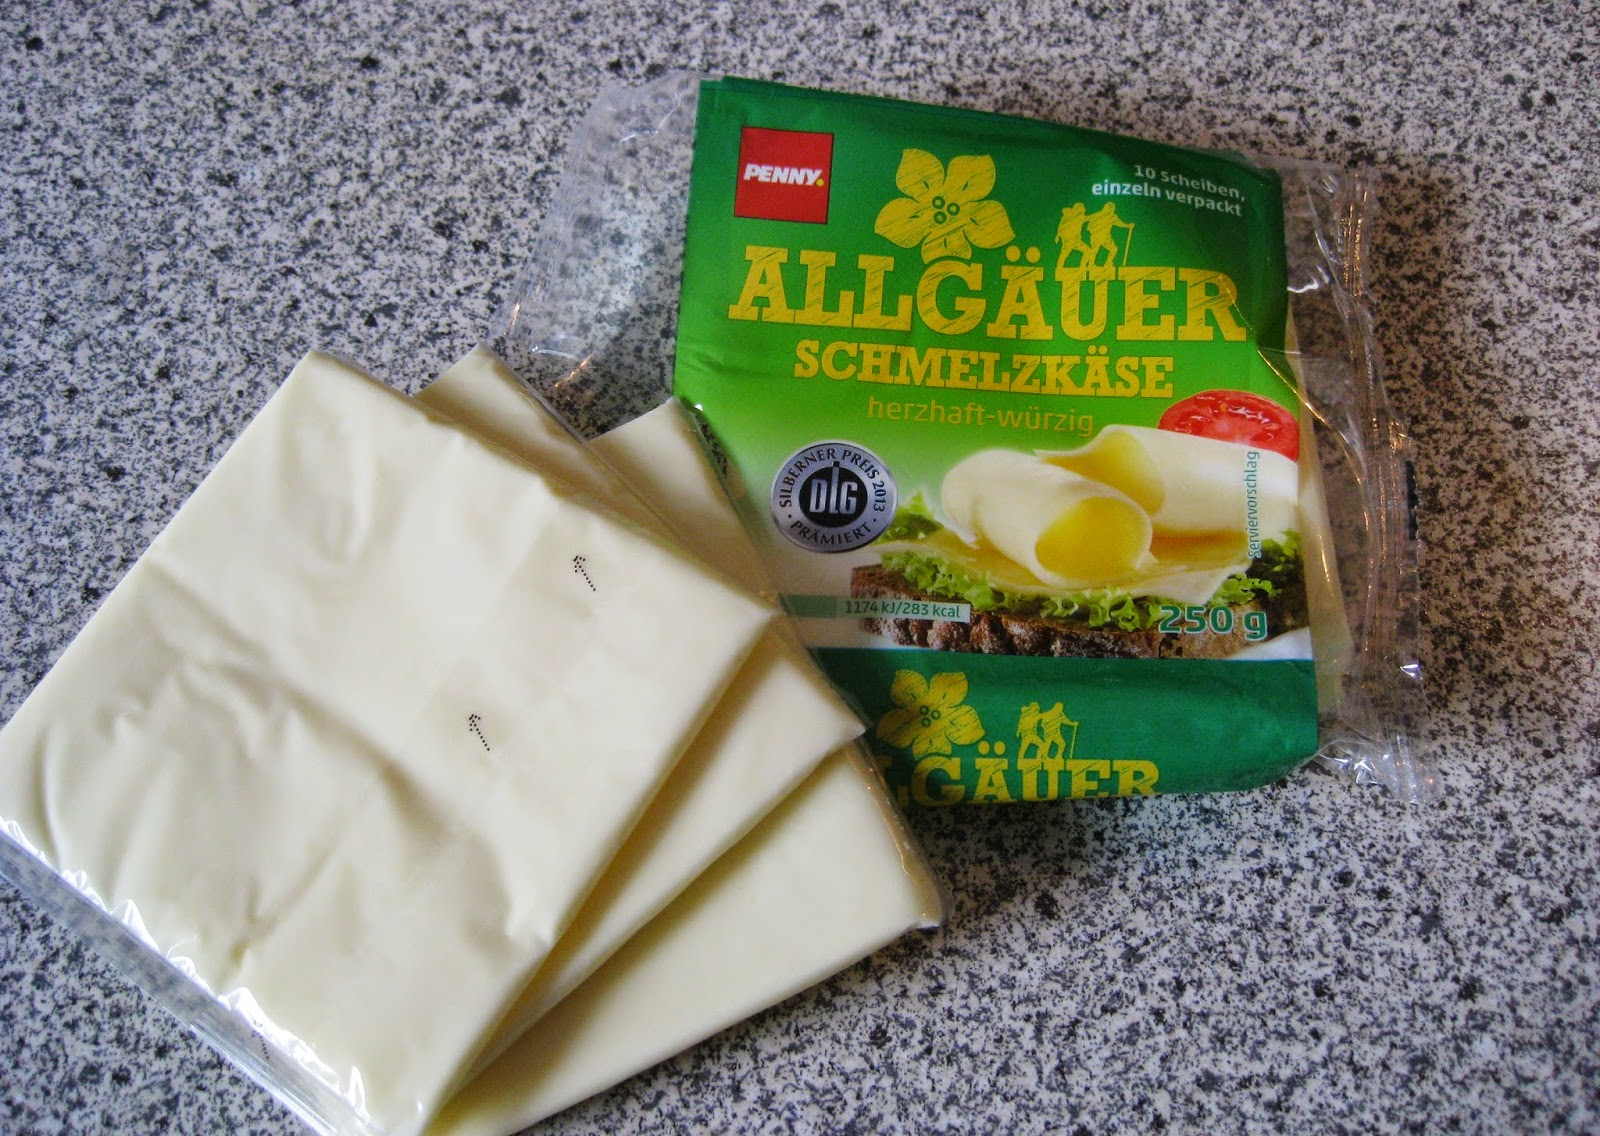 German form of American cheese